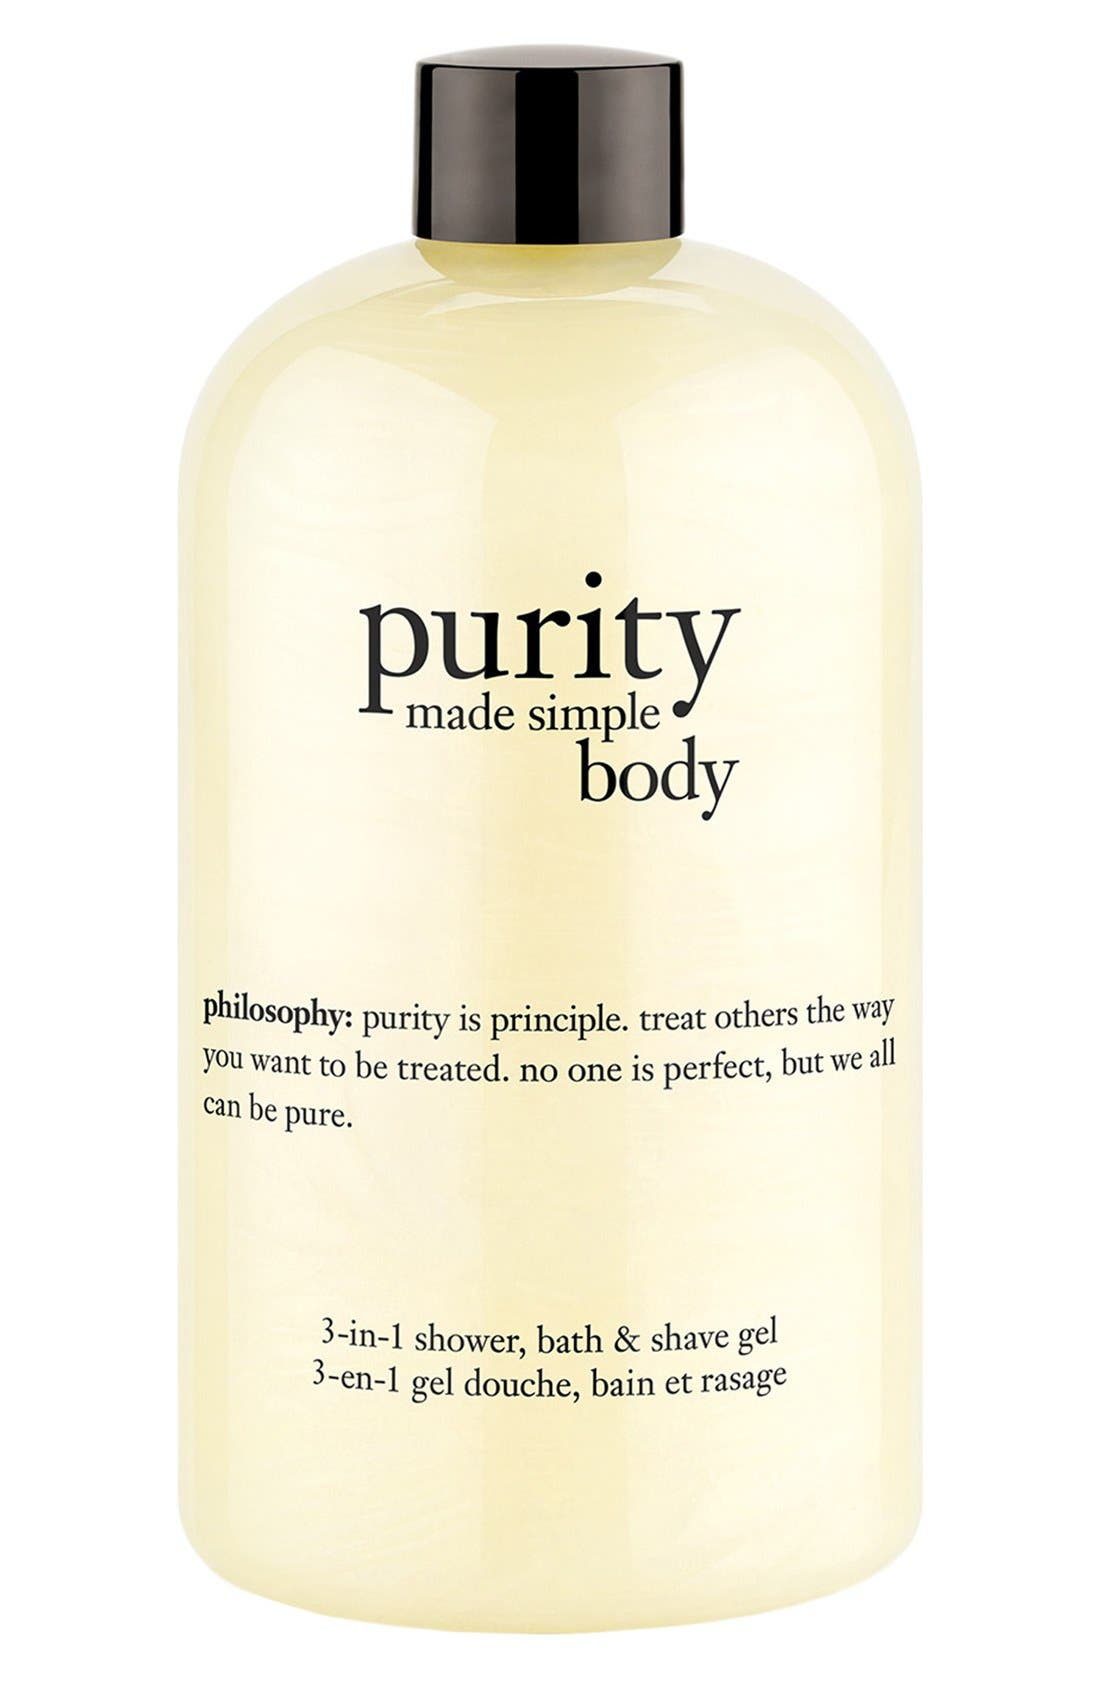 PHILOSOPHY 'purity made simple body' 3-in-1 shower, bath & shave gel, Main, color, NO COLOR